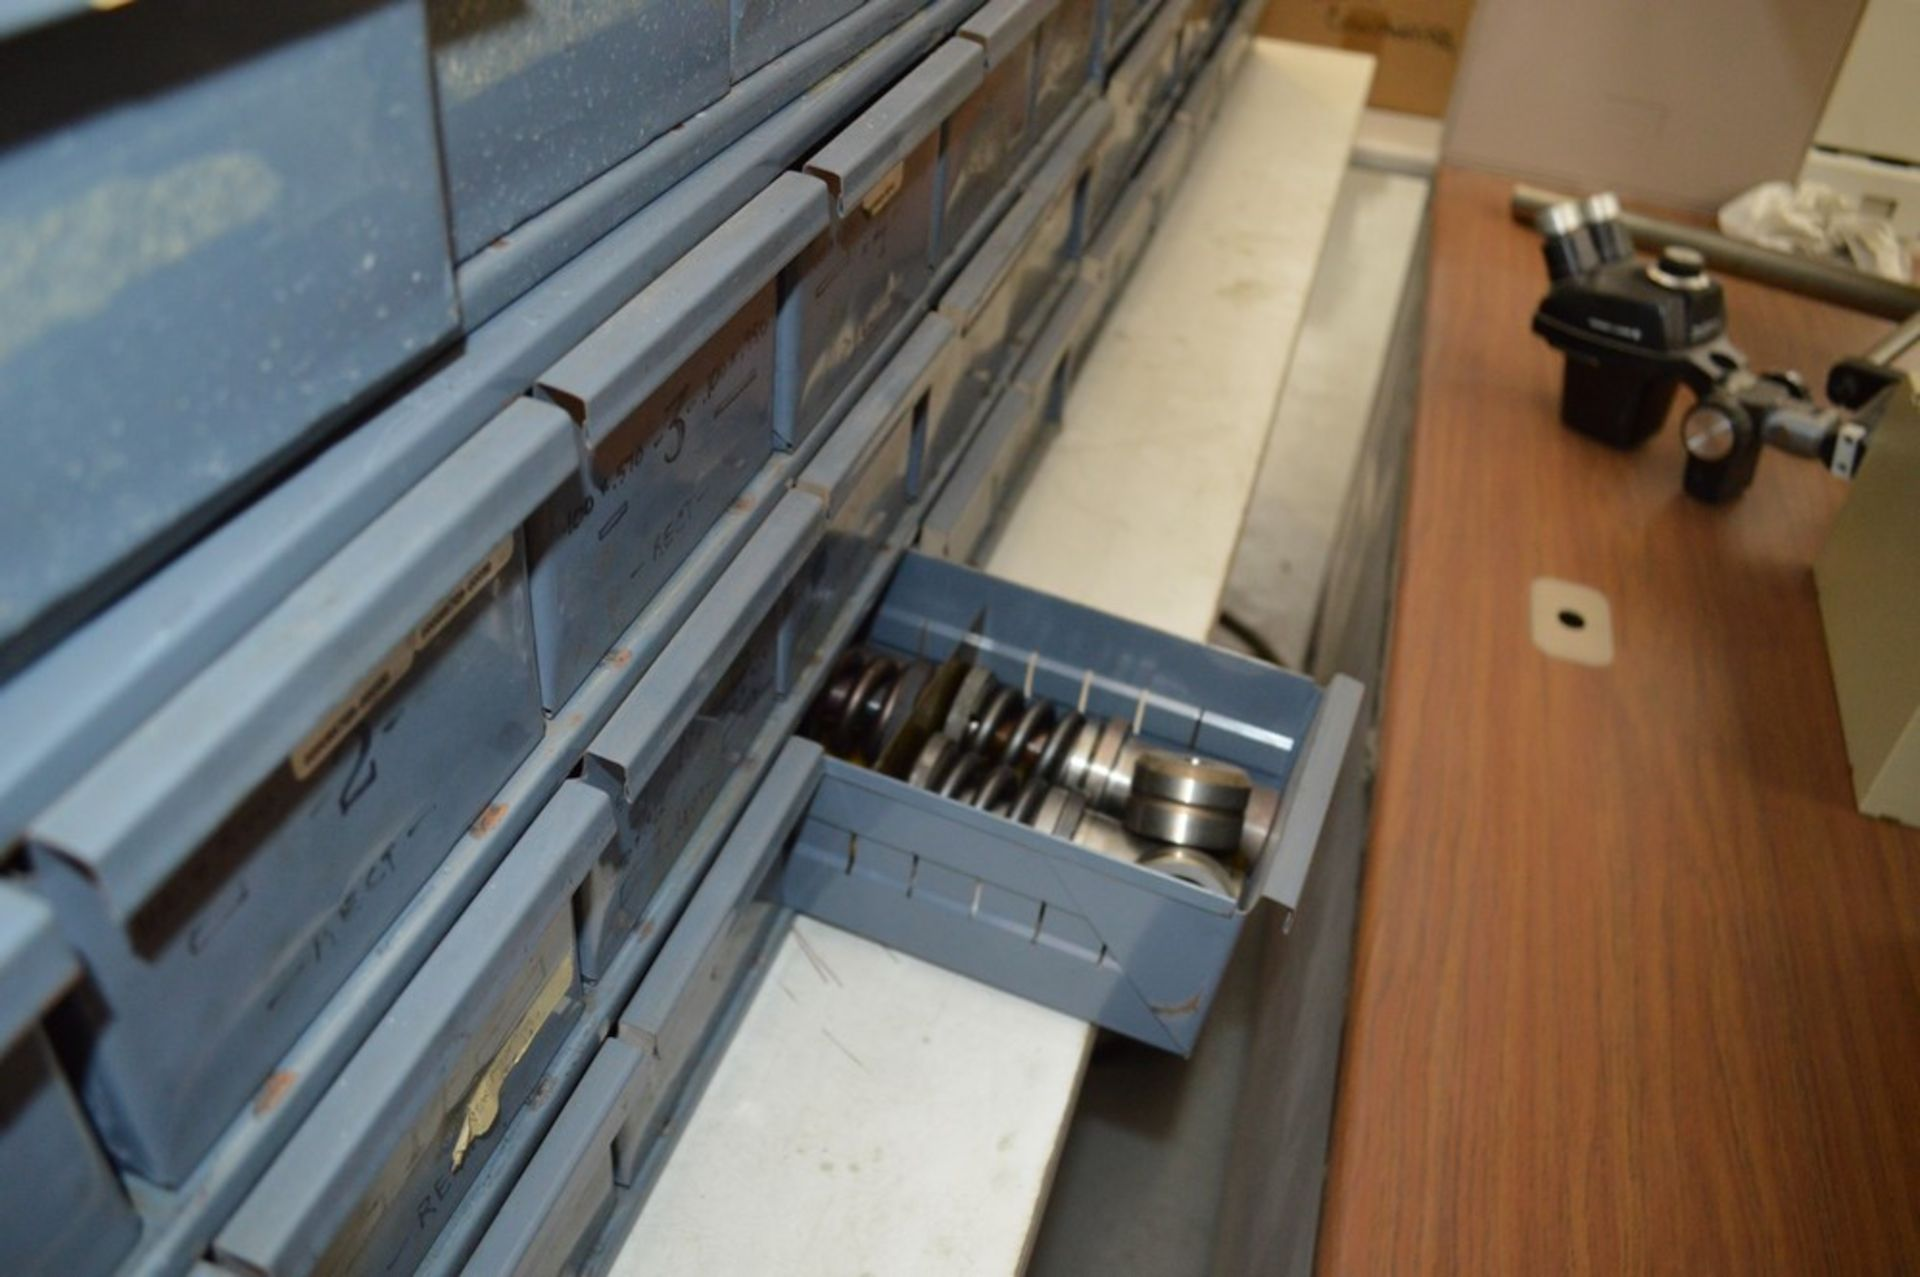 8 Metal cabinets with punch tooling and accessories, all contents included - Image 9 of 9